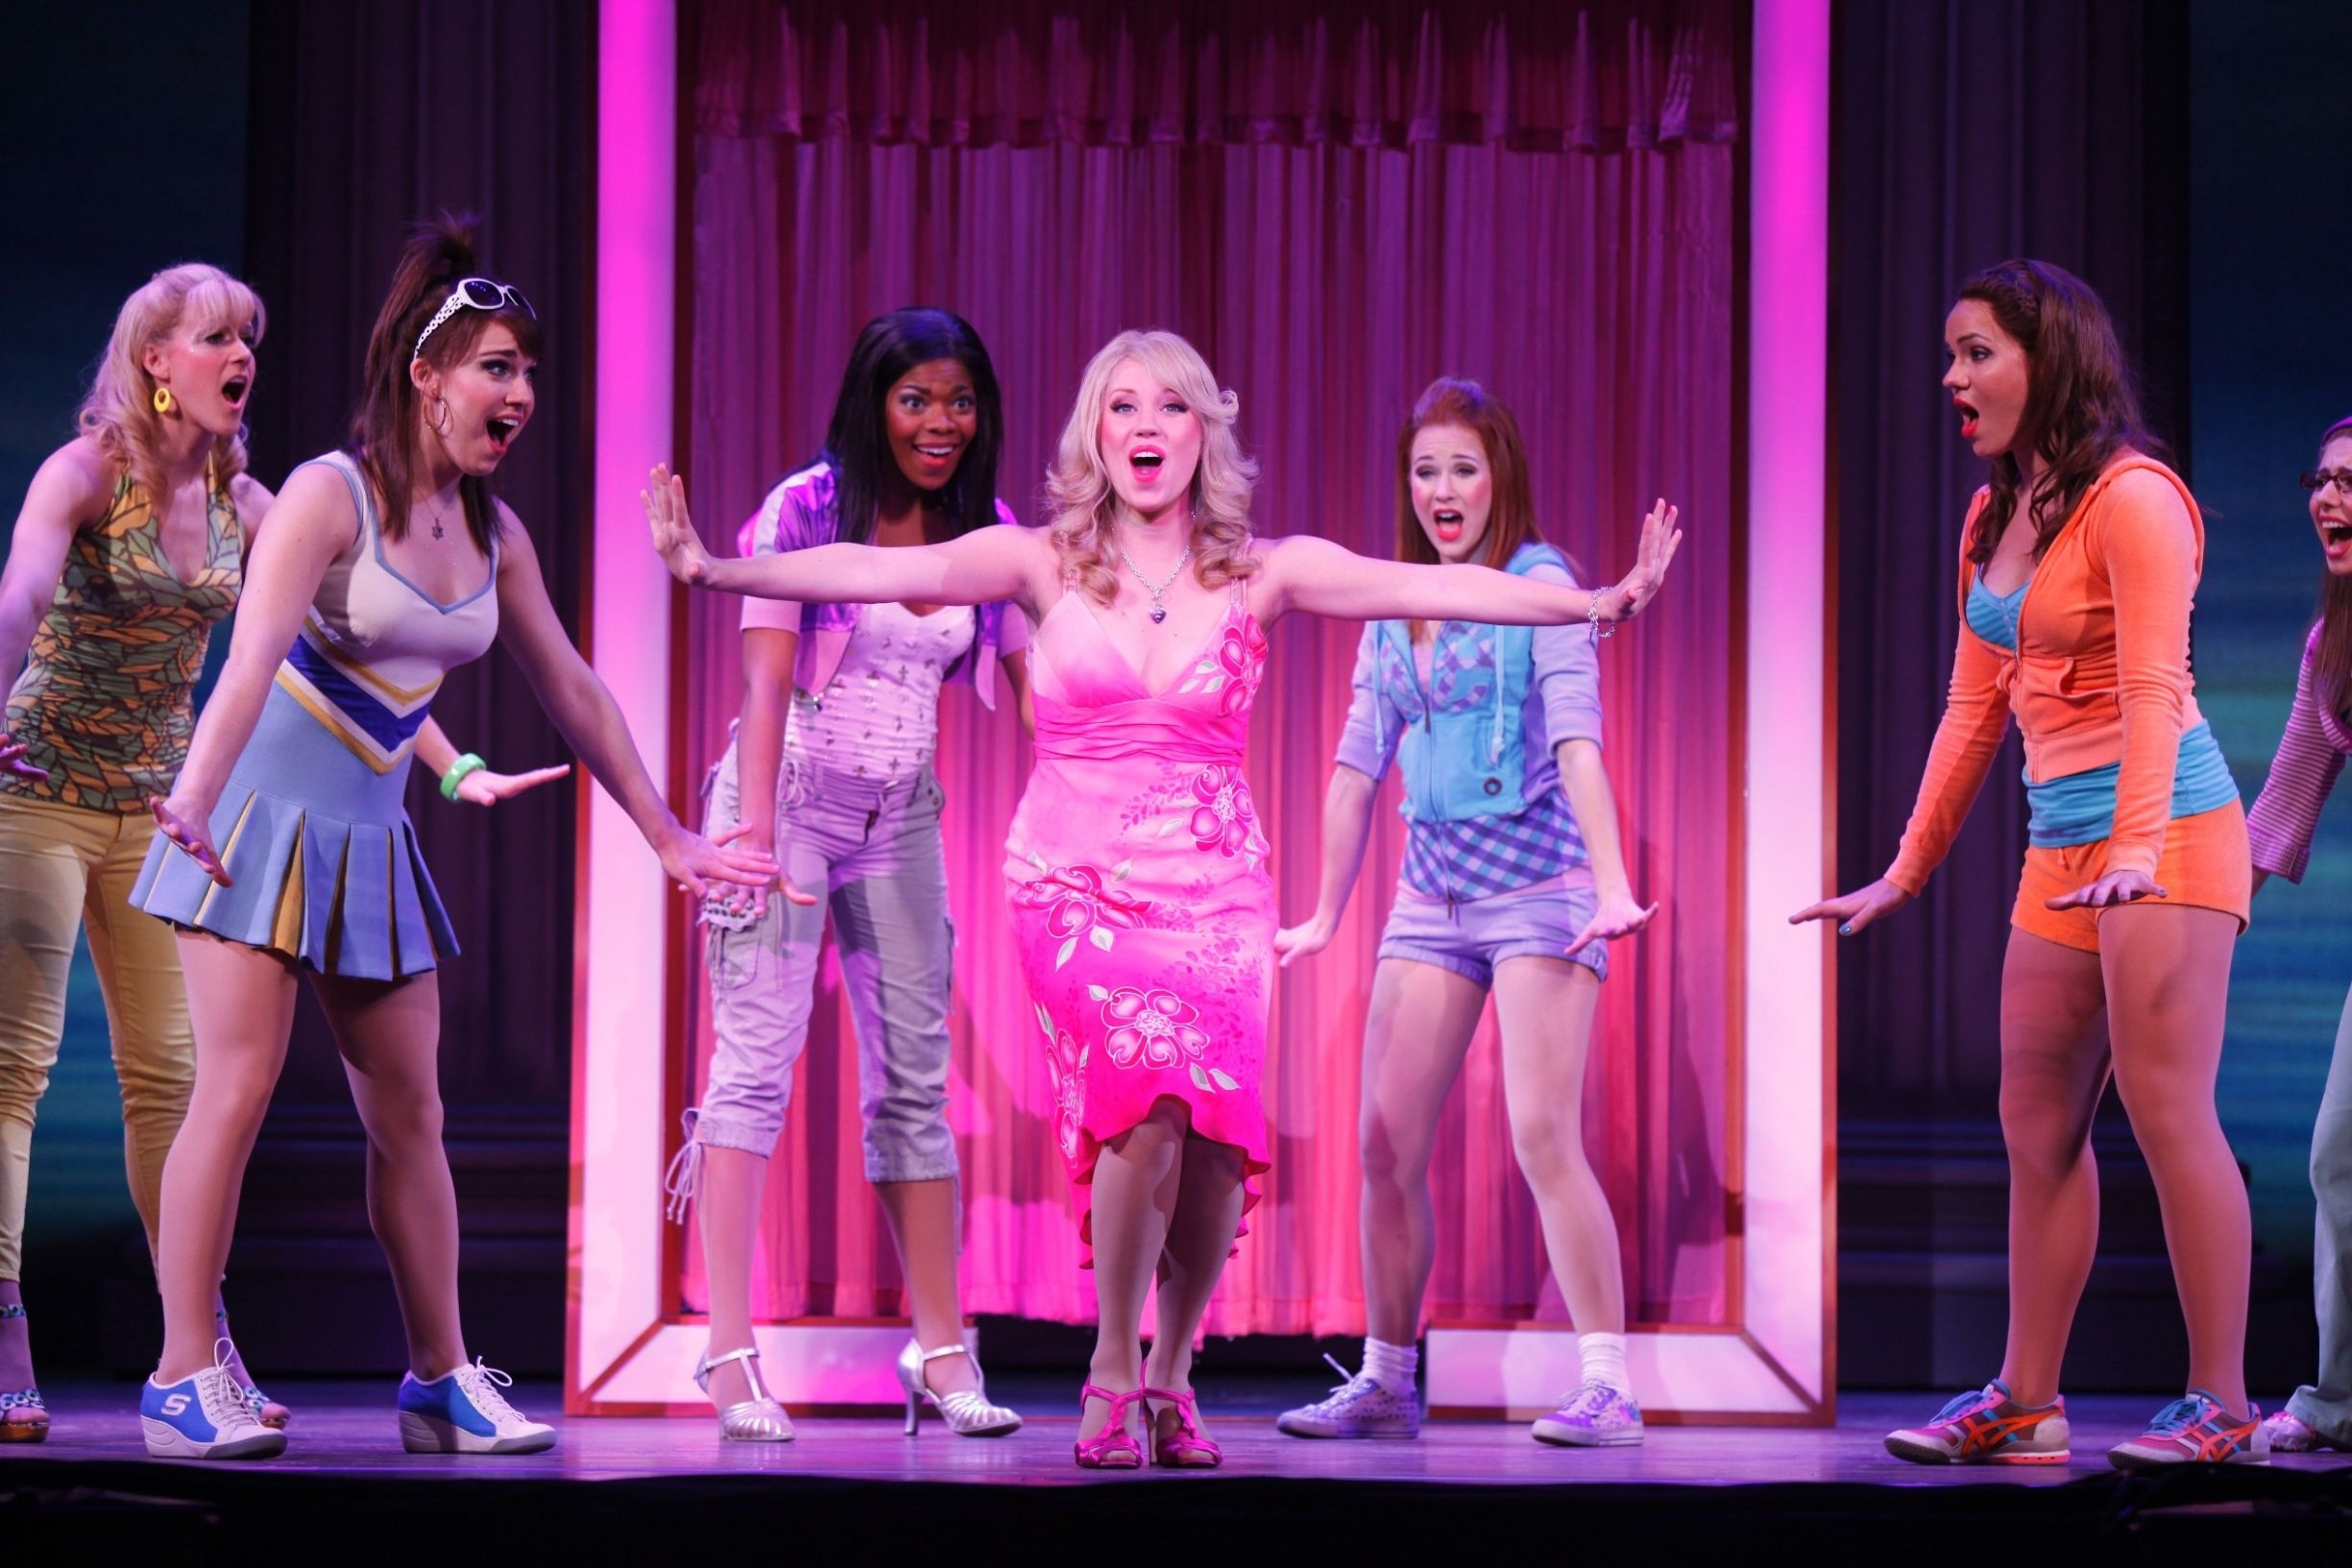 Elle Woods Dressing Room Scene With Images Legally Blonde